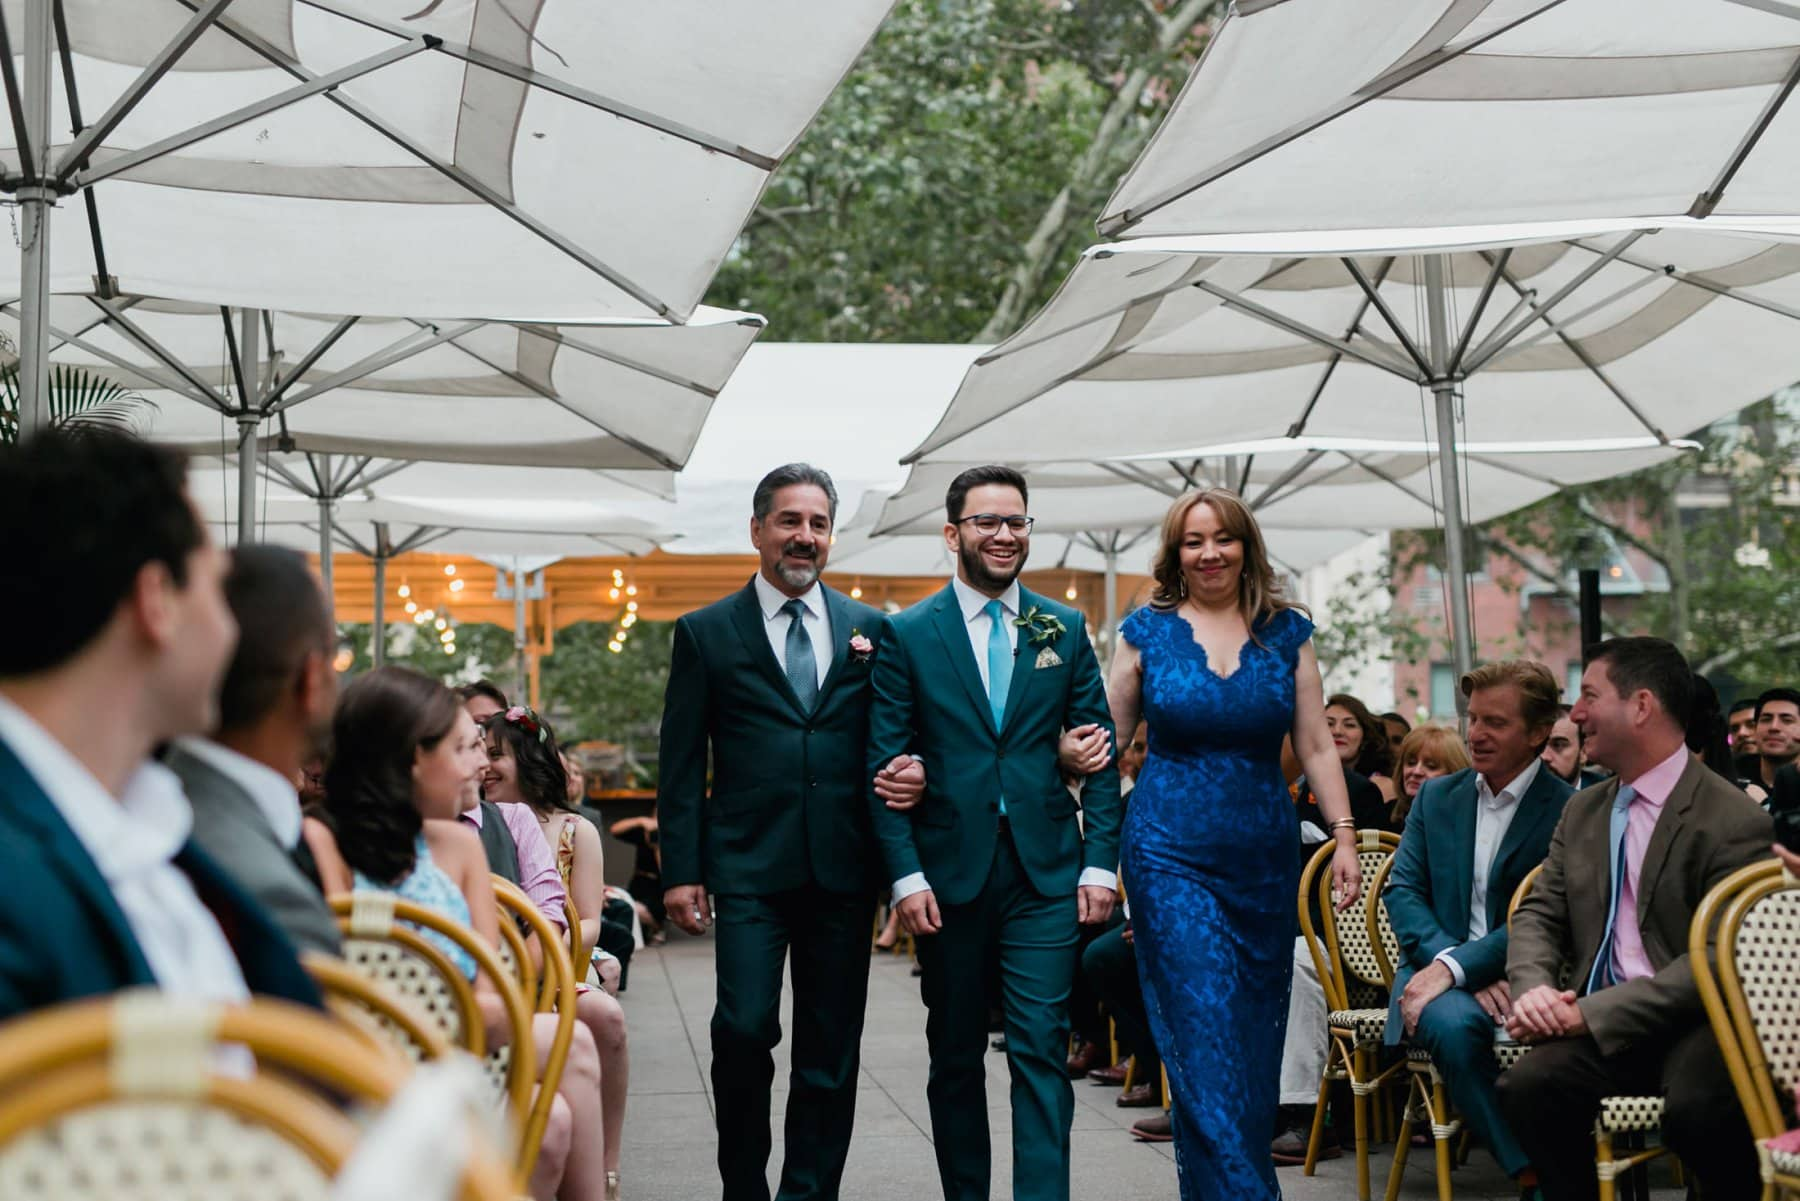 Bryant Park Grill wedding ceremony groom walking down aisle escorted by both parents